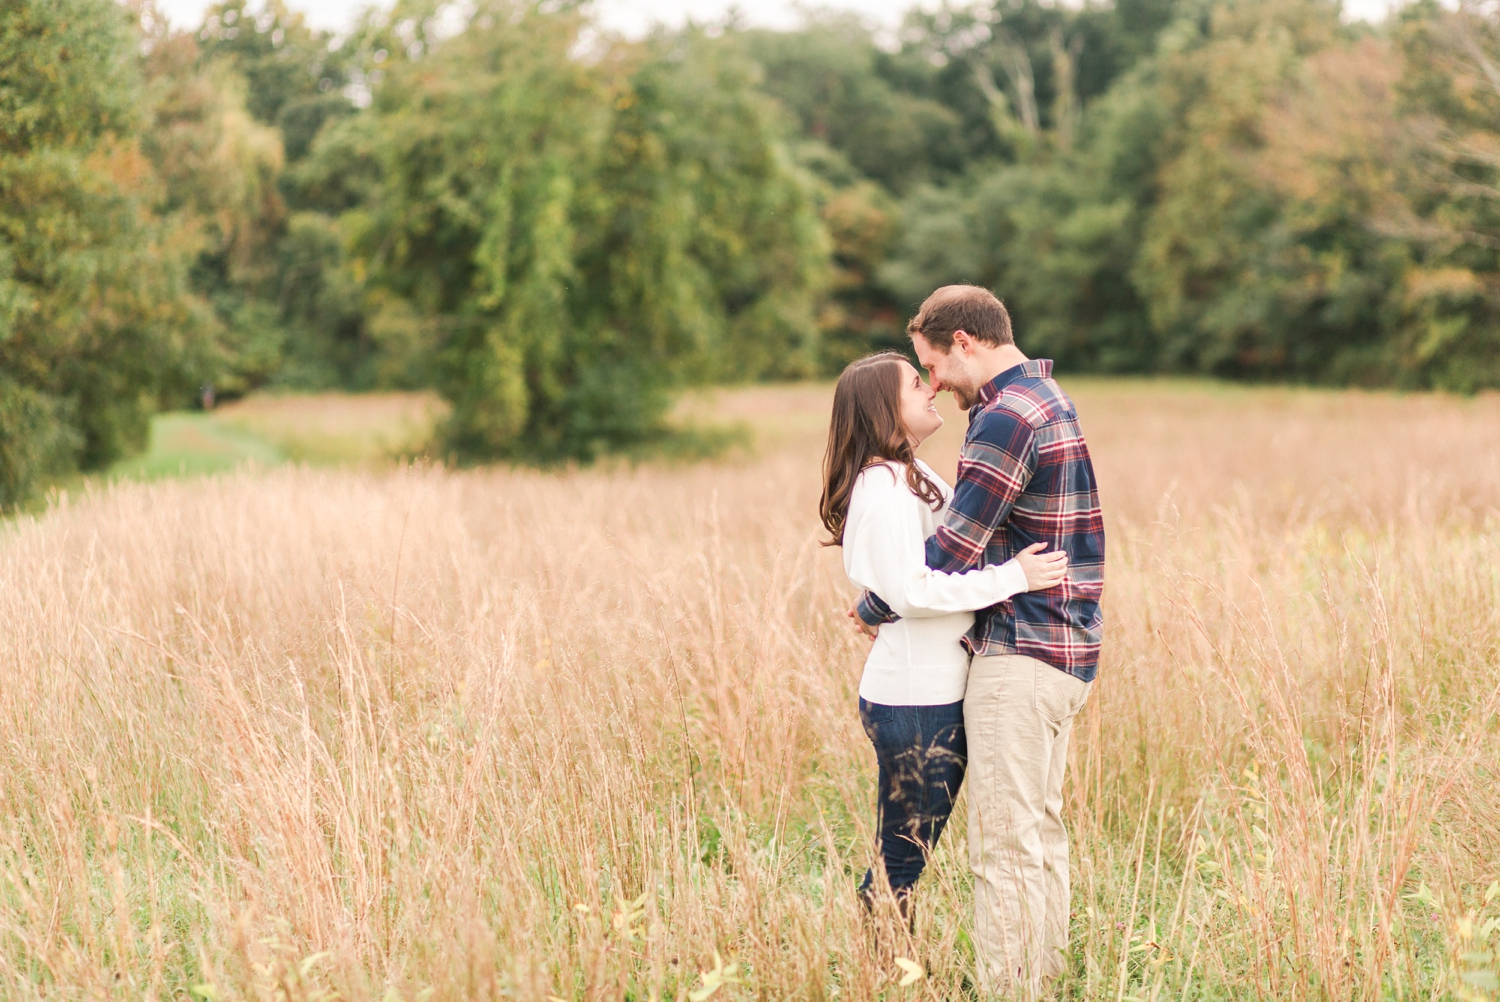 waveny-park-engagement-session-new-canaan-connecticut-wedding-photographer-sw-shaina-lee-photography-photo-12.jpg